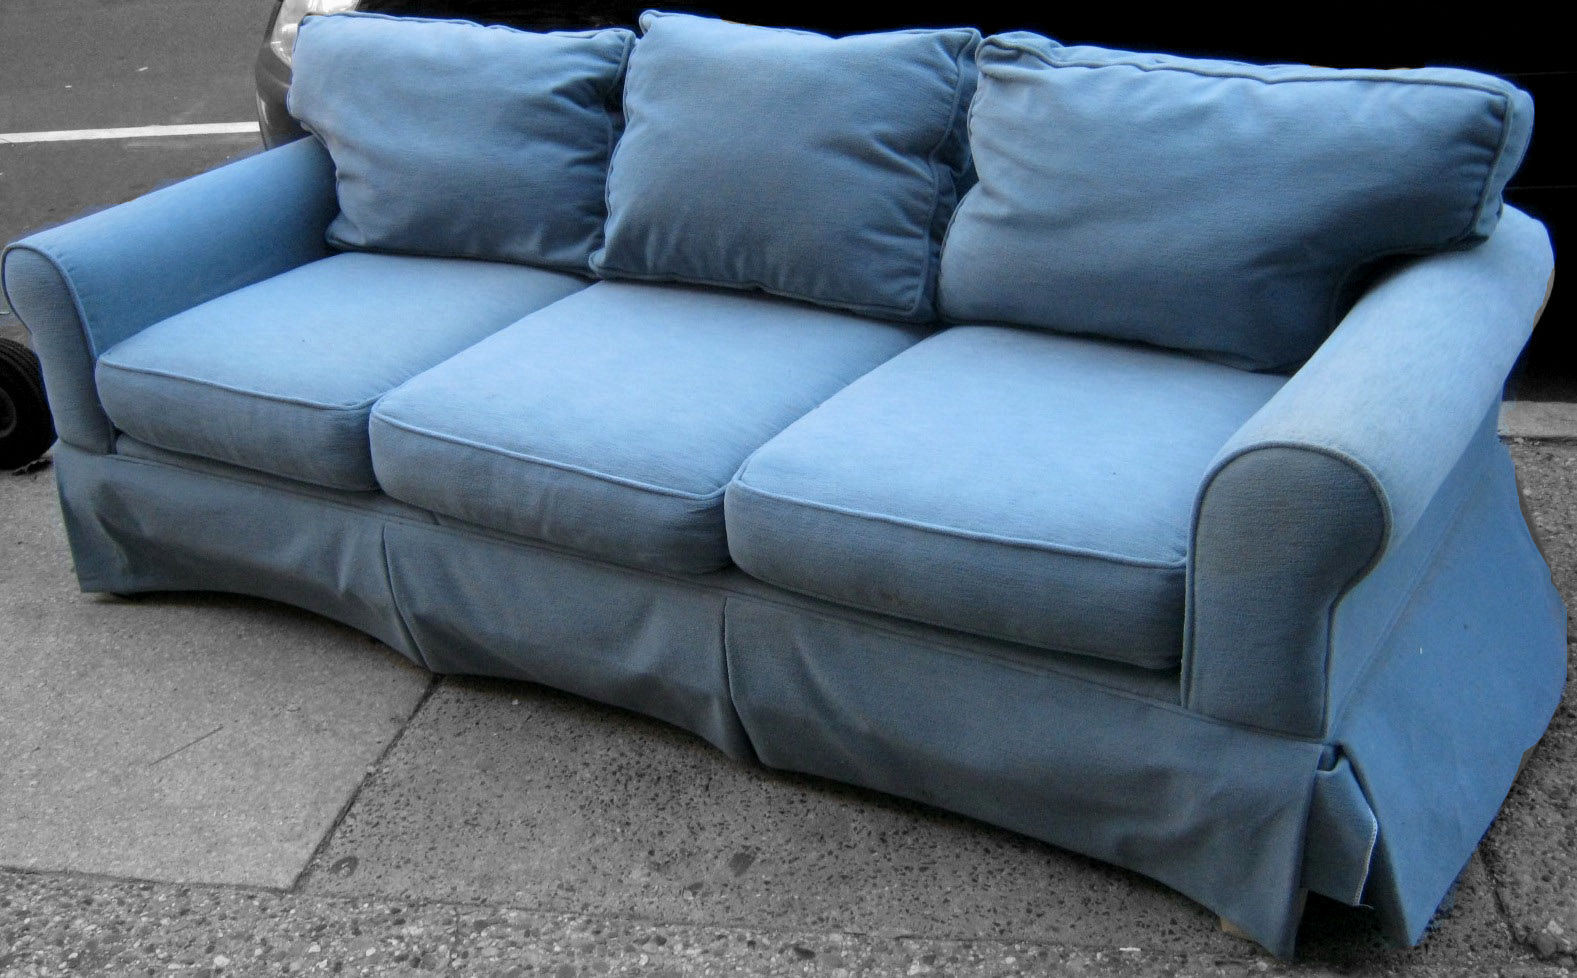 terrific leather tufted sofa inspiration-Wonderful Leather Tufted sofa Pattern